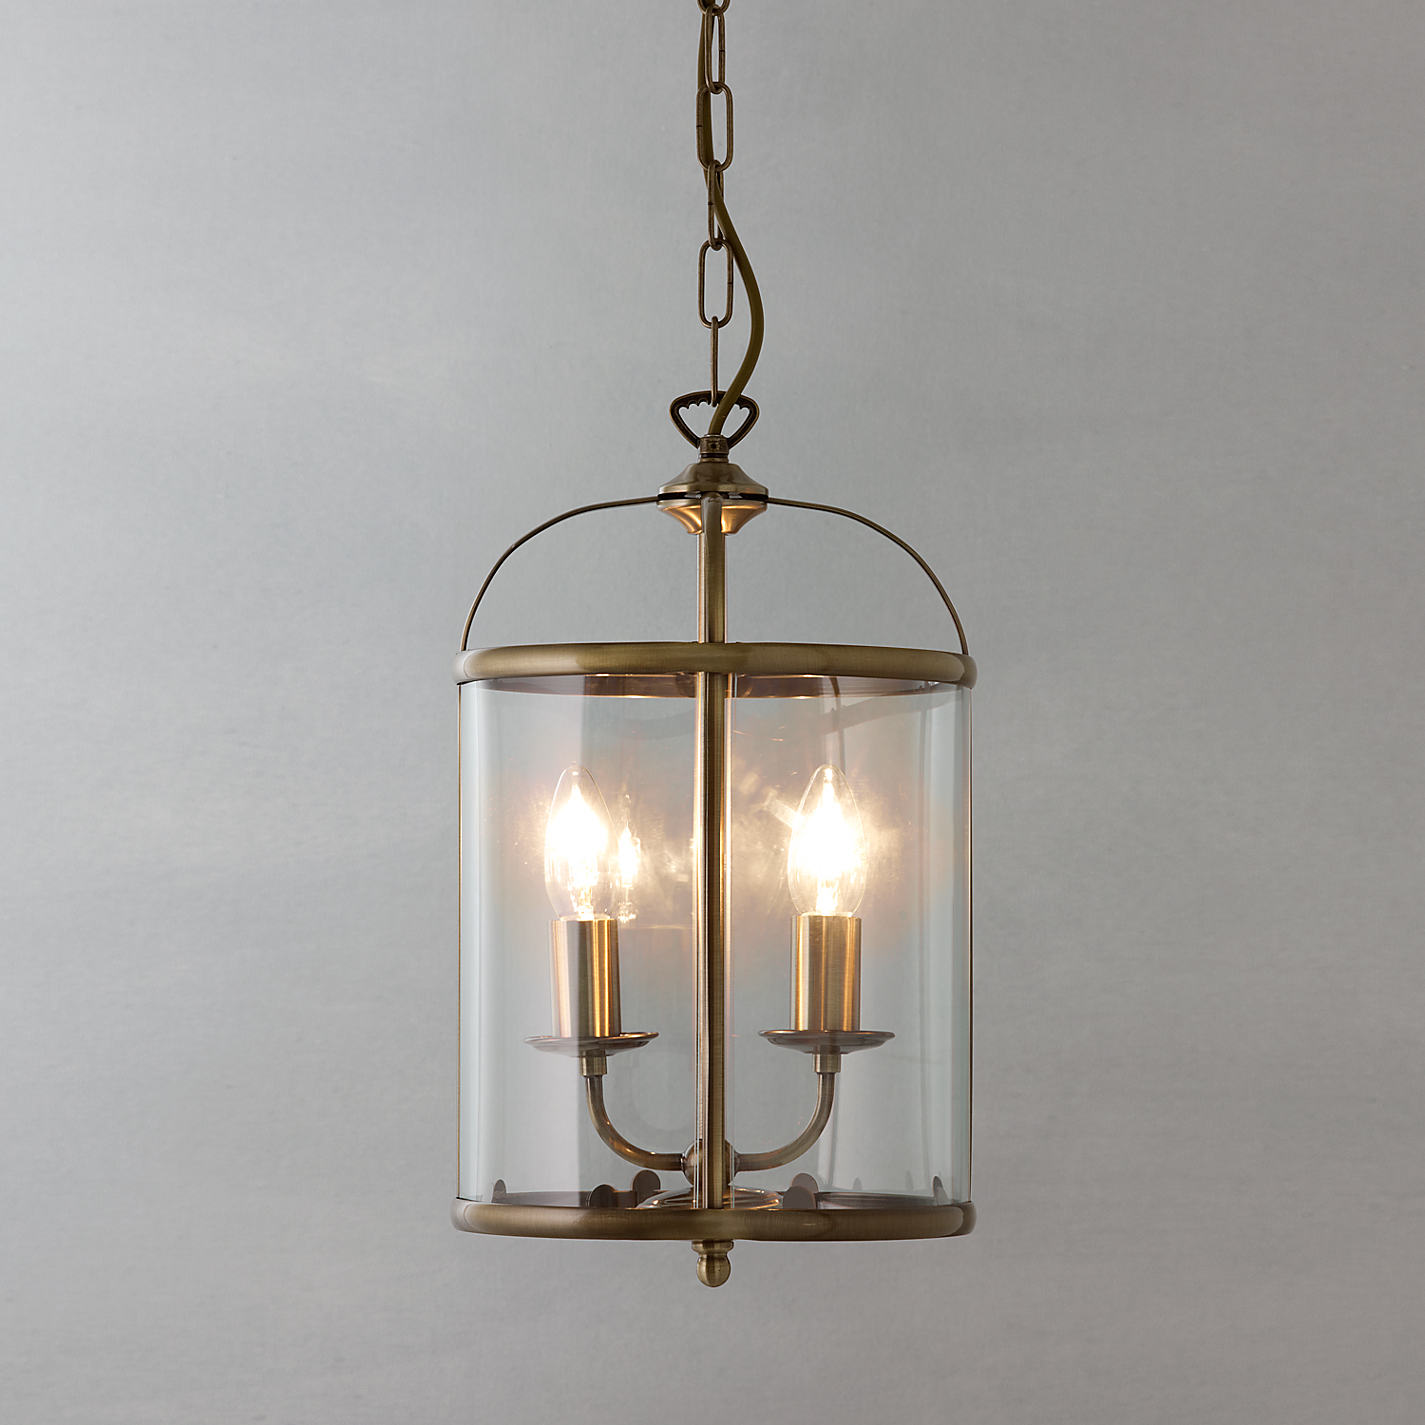 Buy walker 2 light lantern john lewis buy walker 2 light lantern online at johnlewis aloadofball Gallery